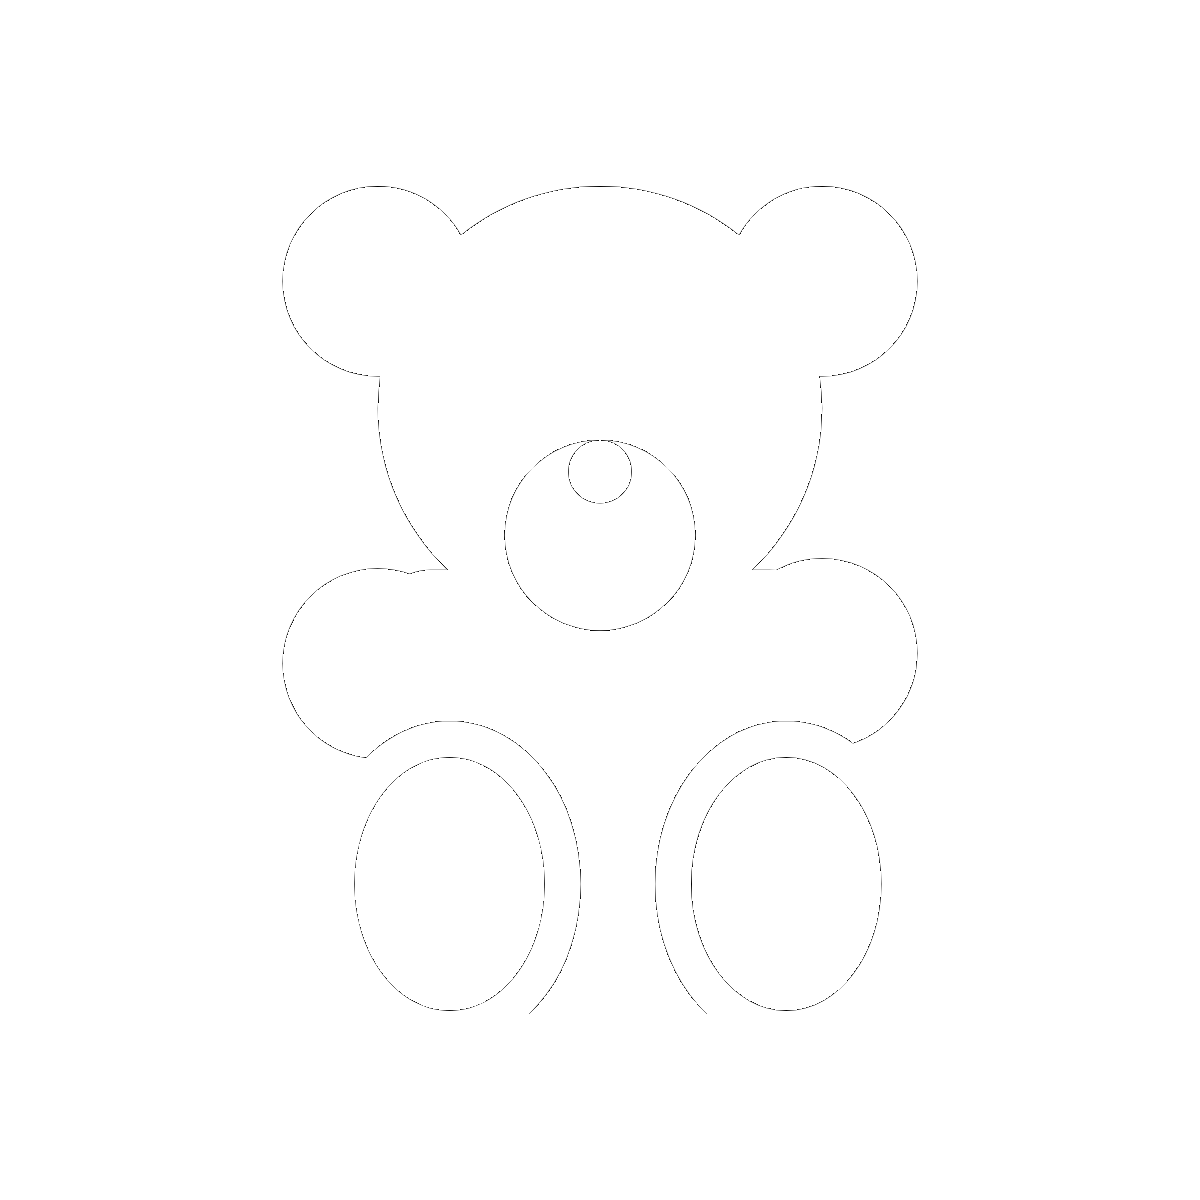 Symbol The Blind Toy